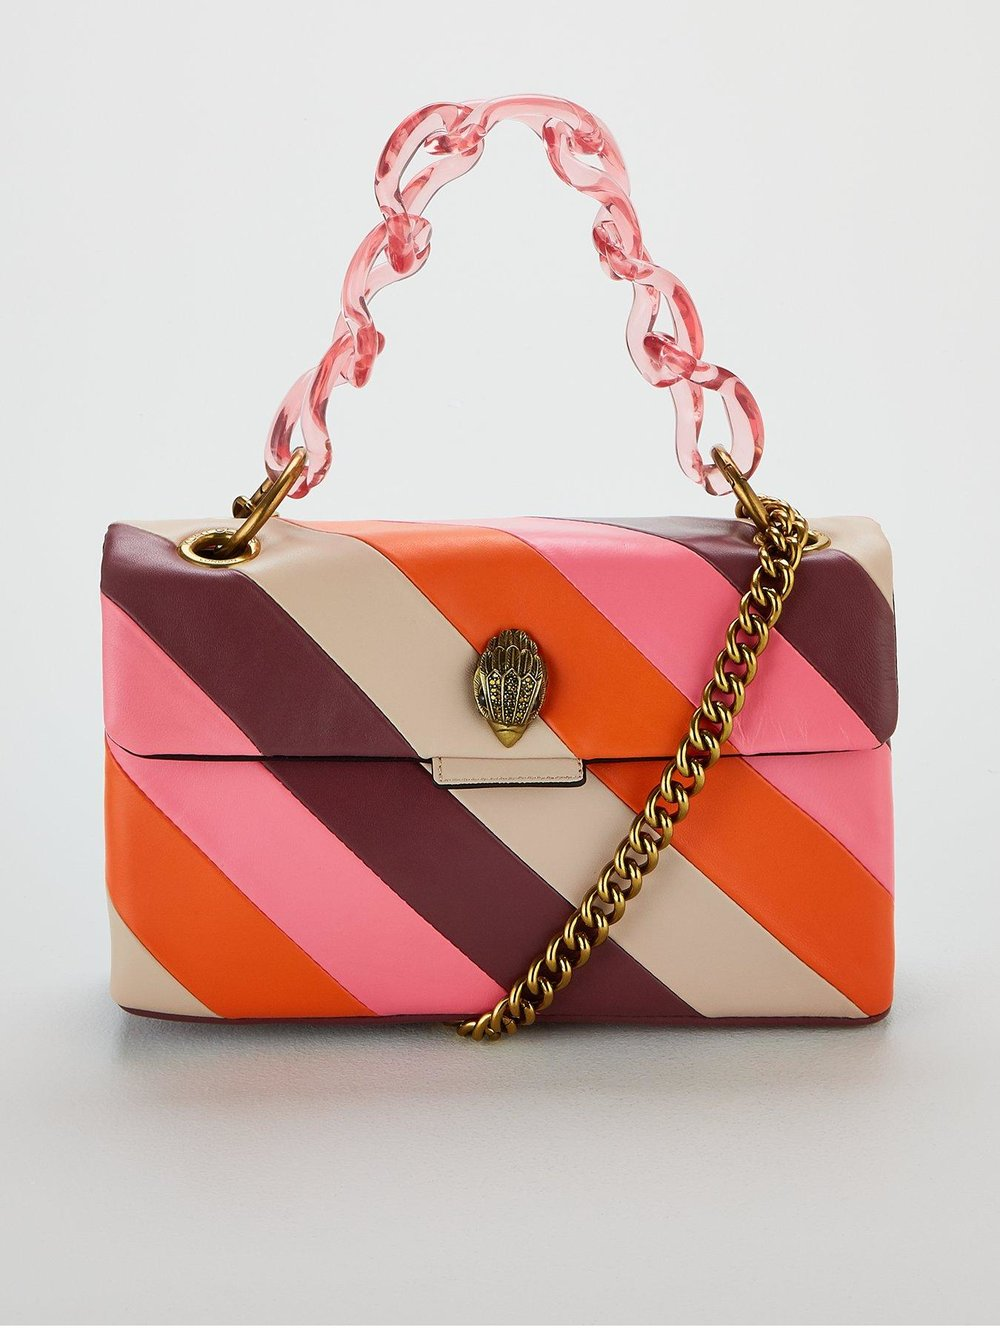 Kurt Geiger Stripe Chain Bag £245